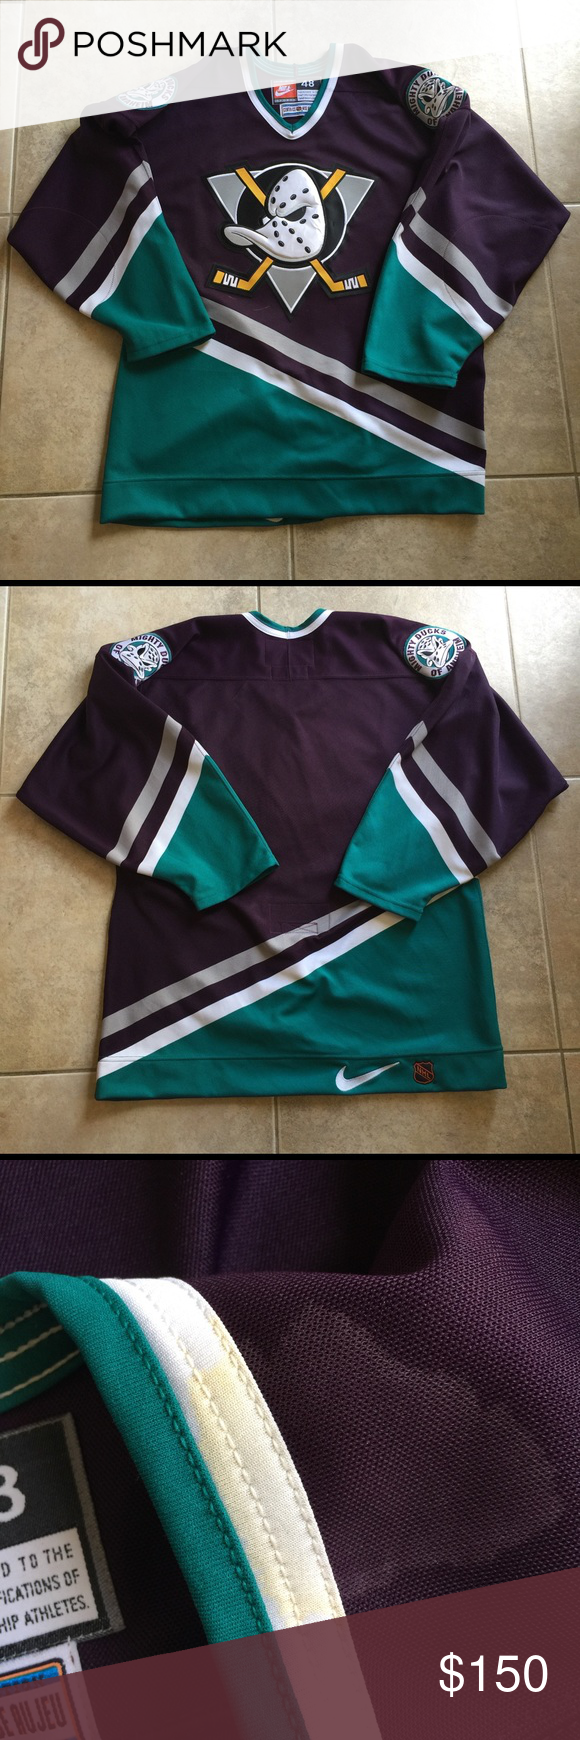 f98a795d1 ... cheapest vintage anaheim mighty ducks nike jersey great condition. size  48 mens xl. letters